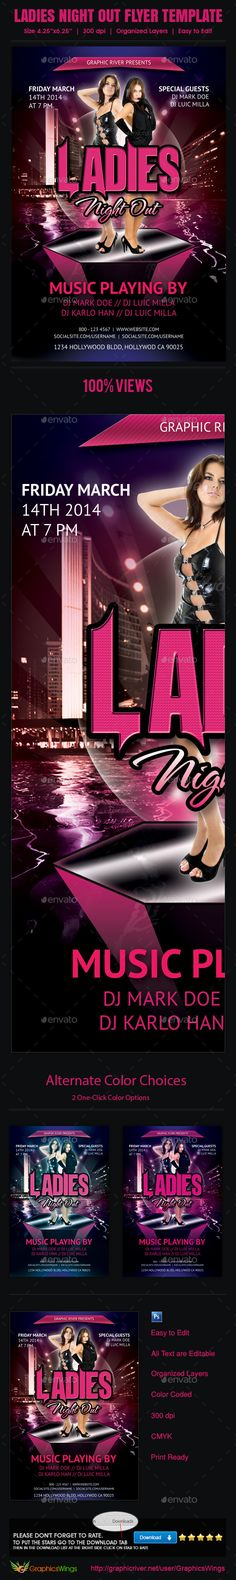 Buy Ladies Night Out Flyer Template by kreativenet on GraphicRiver. All you need to do is add your event related info. I've made this file very easy for you to edit. This file is sold e. Flyer And Poster Design, Ladies Night, Model Pictures, Clean Design, Flyer Template, Night Out, Craft Projects, Fonts, San